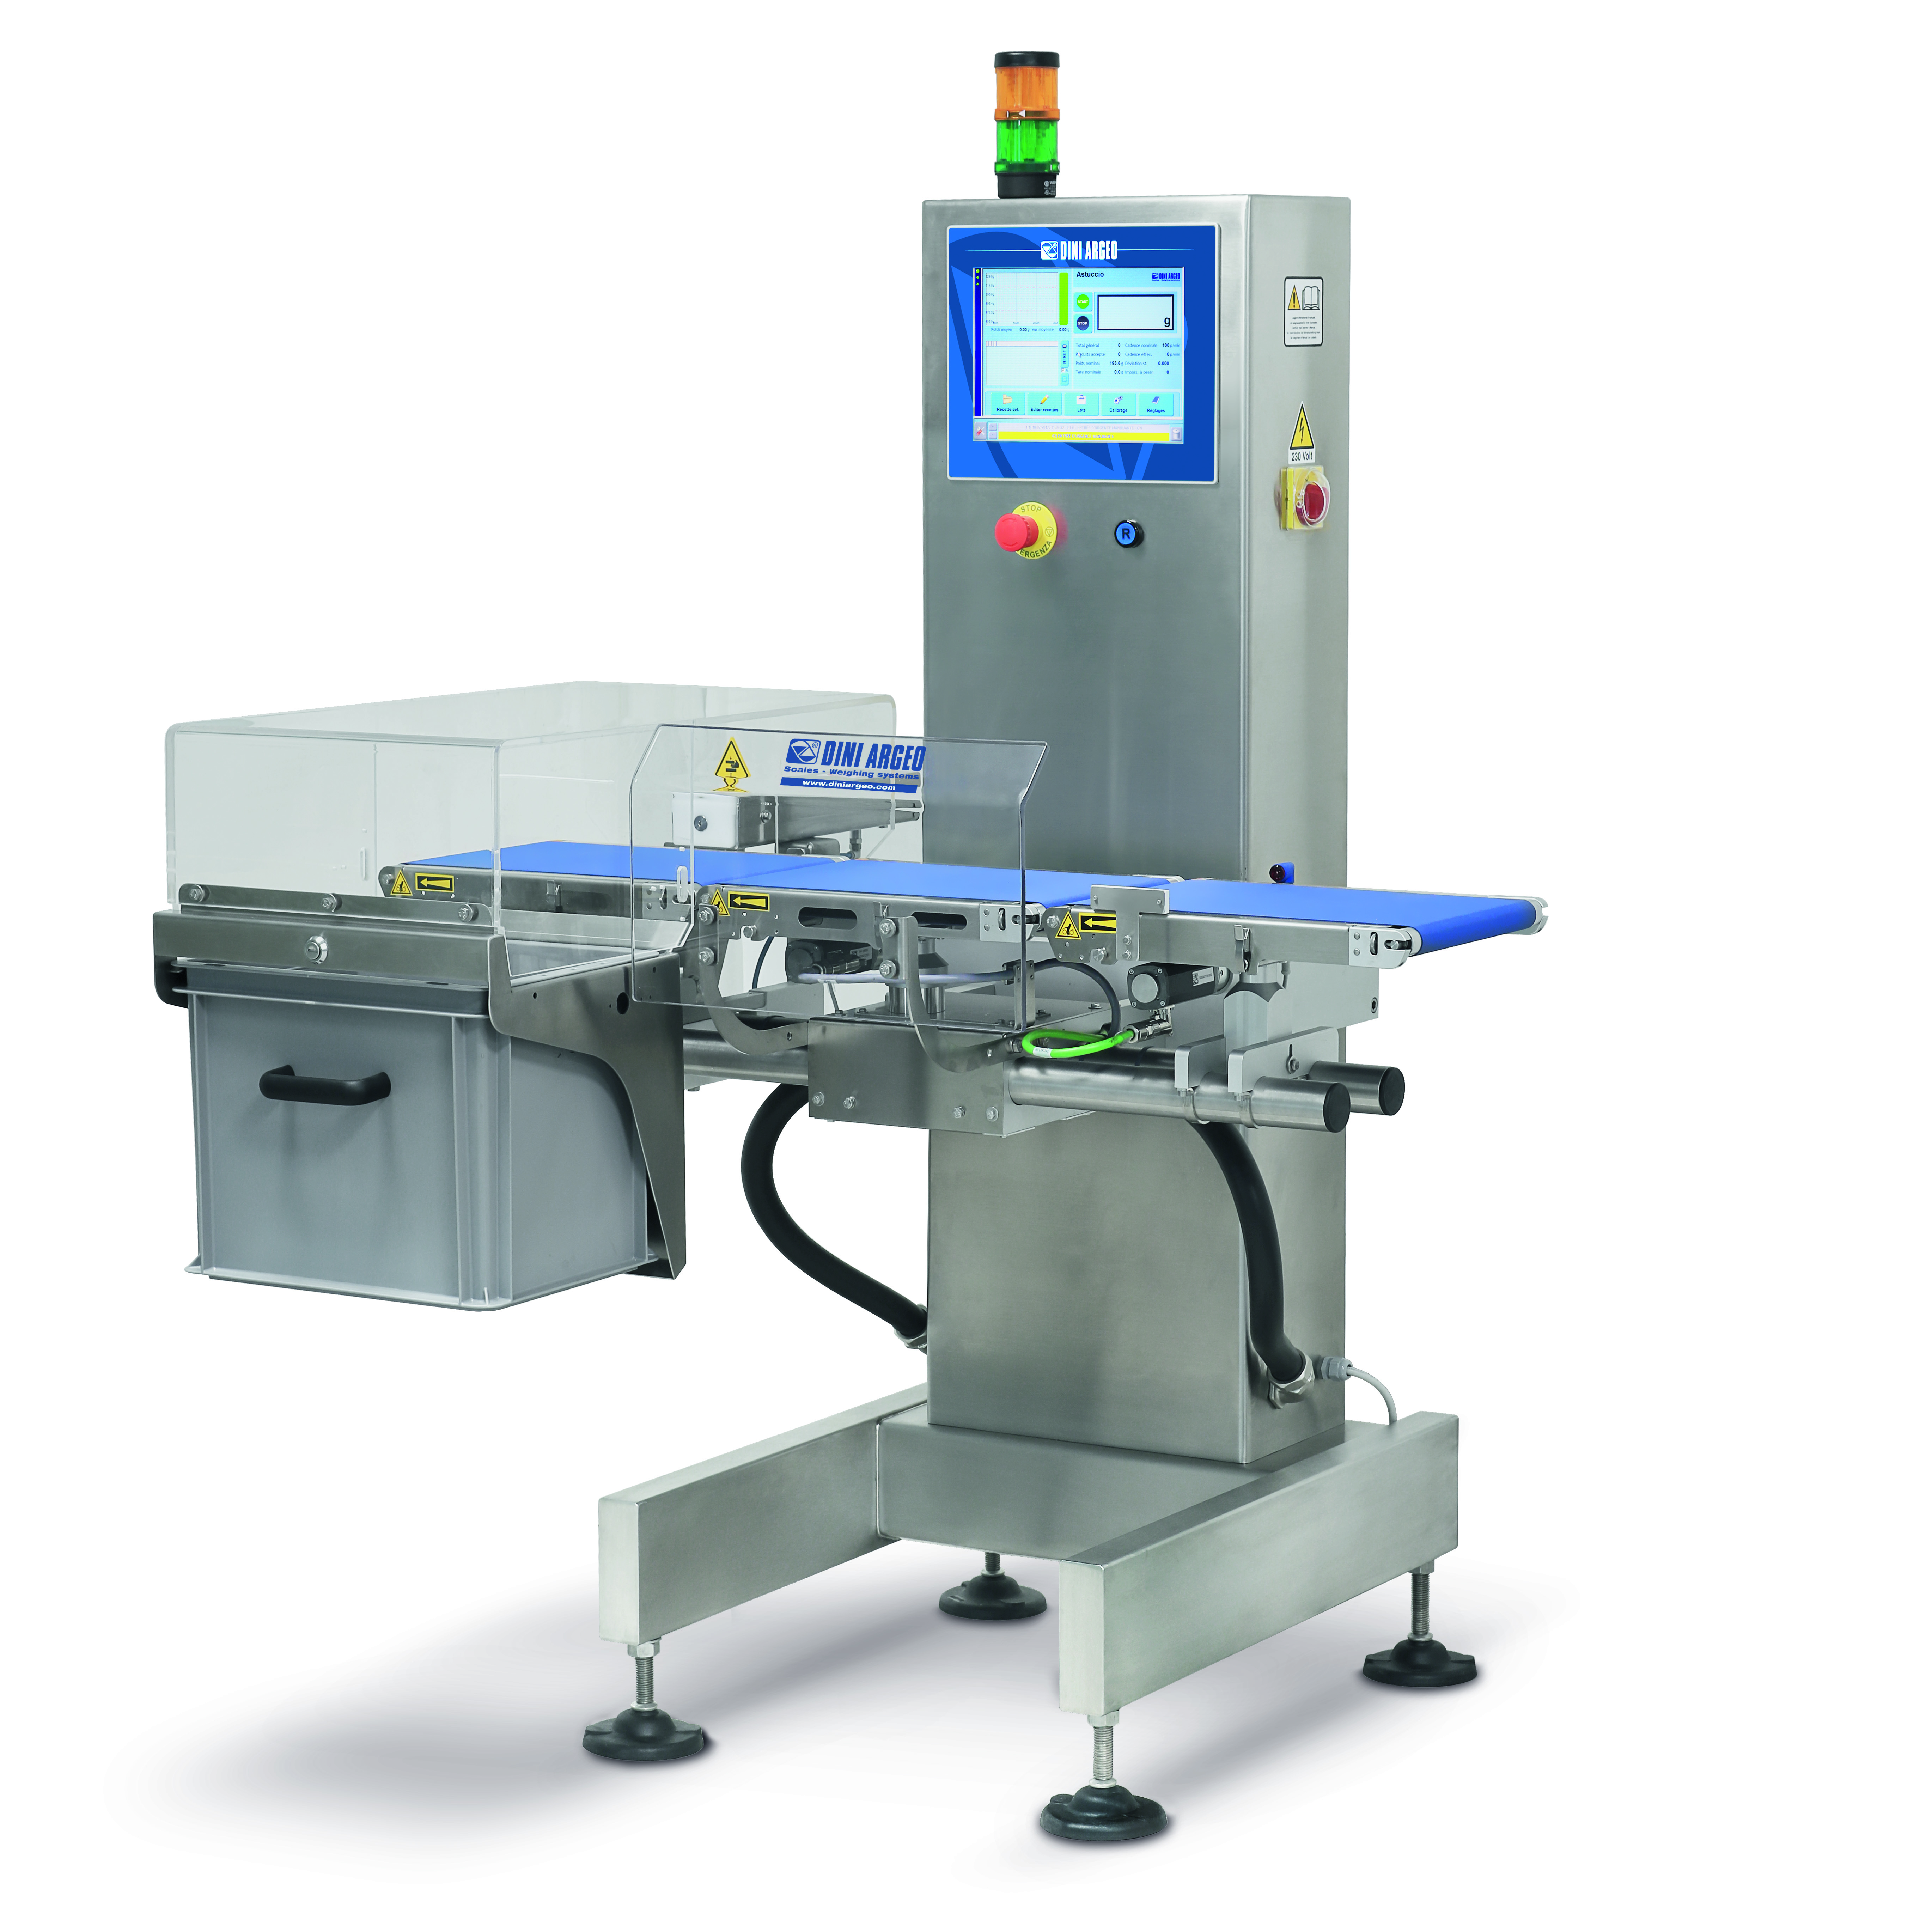 The DFLPRO High Speed Inline Checkweigher